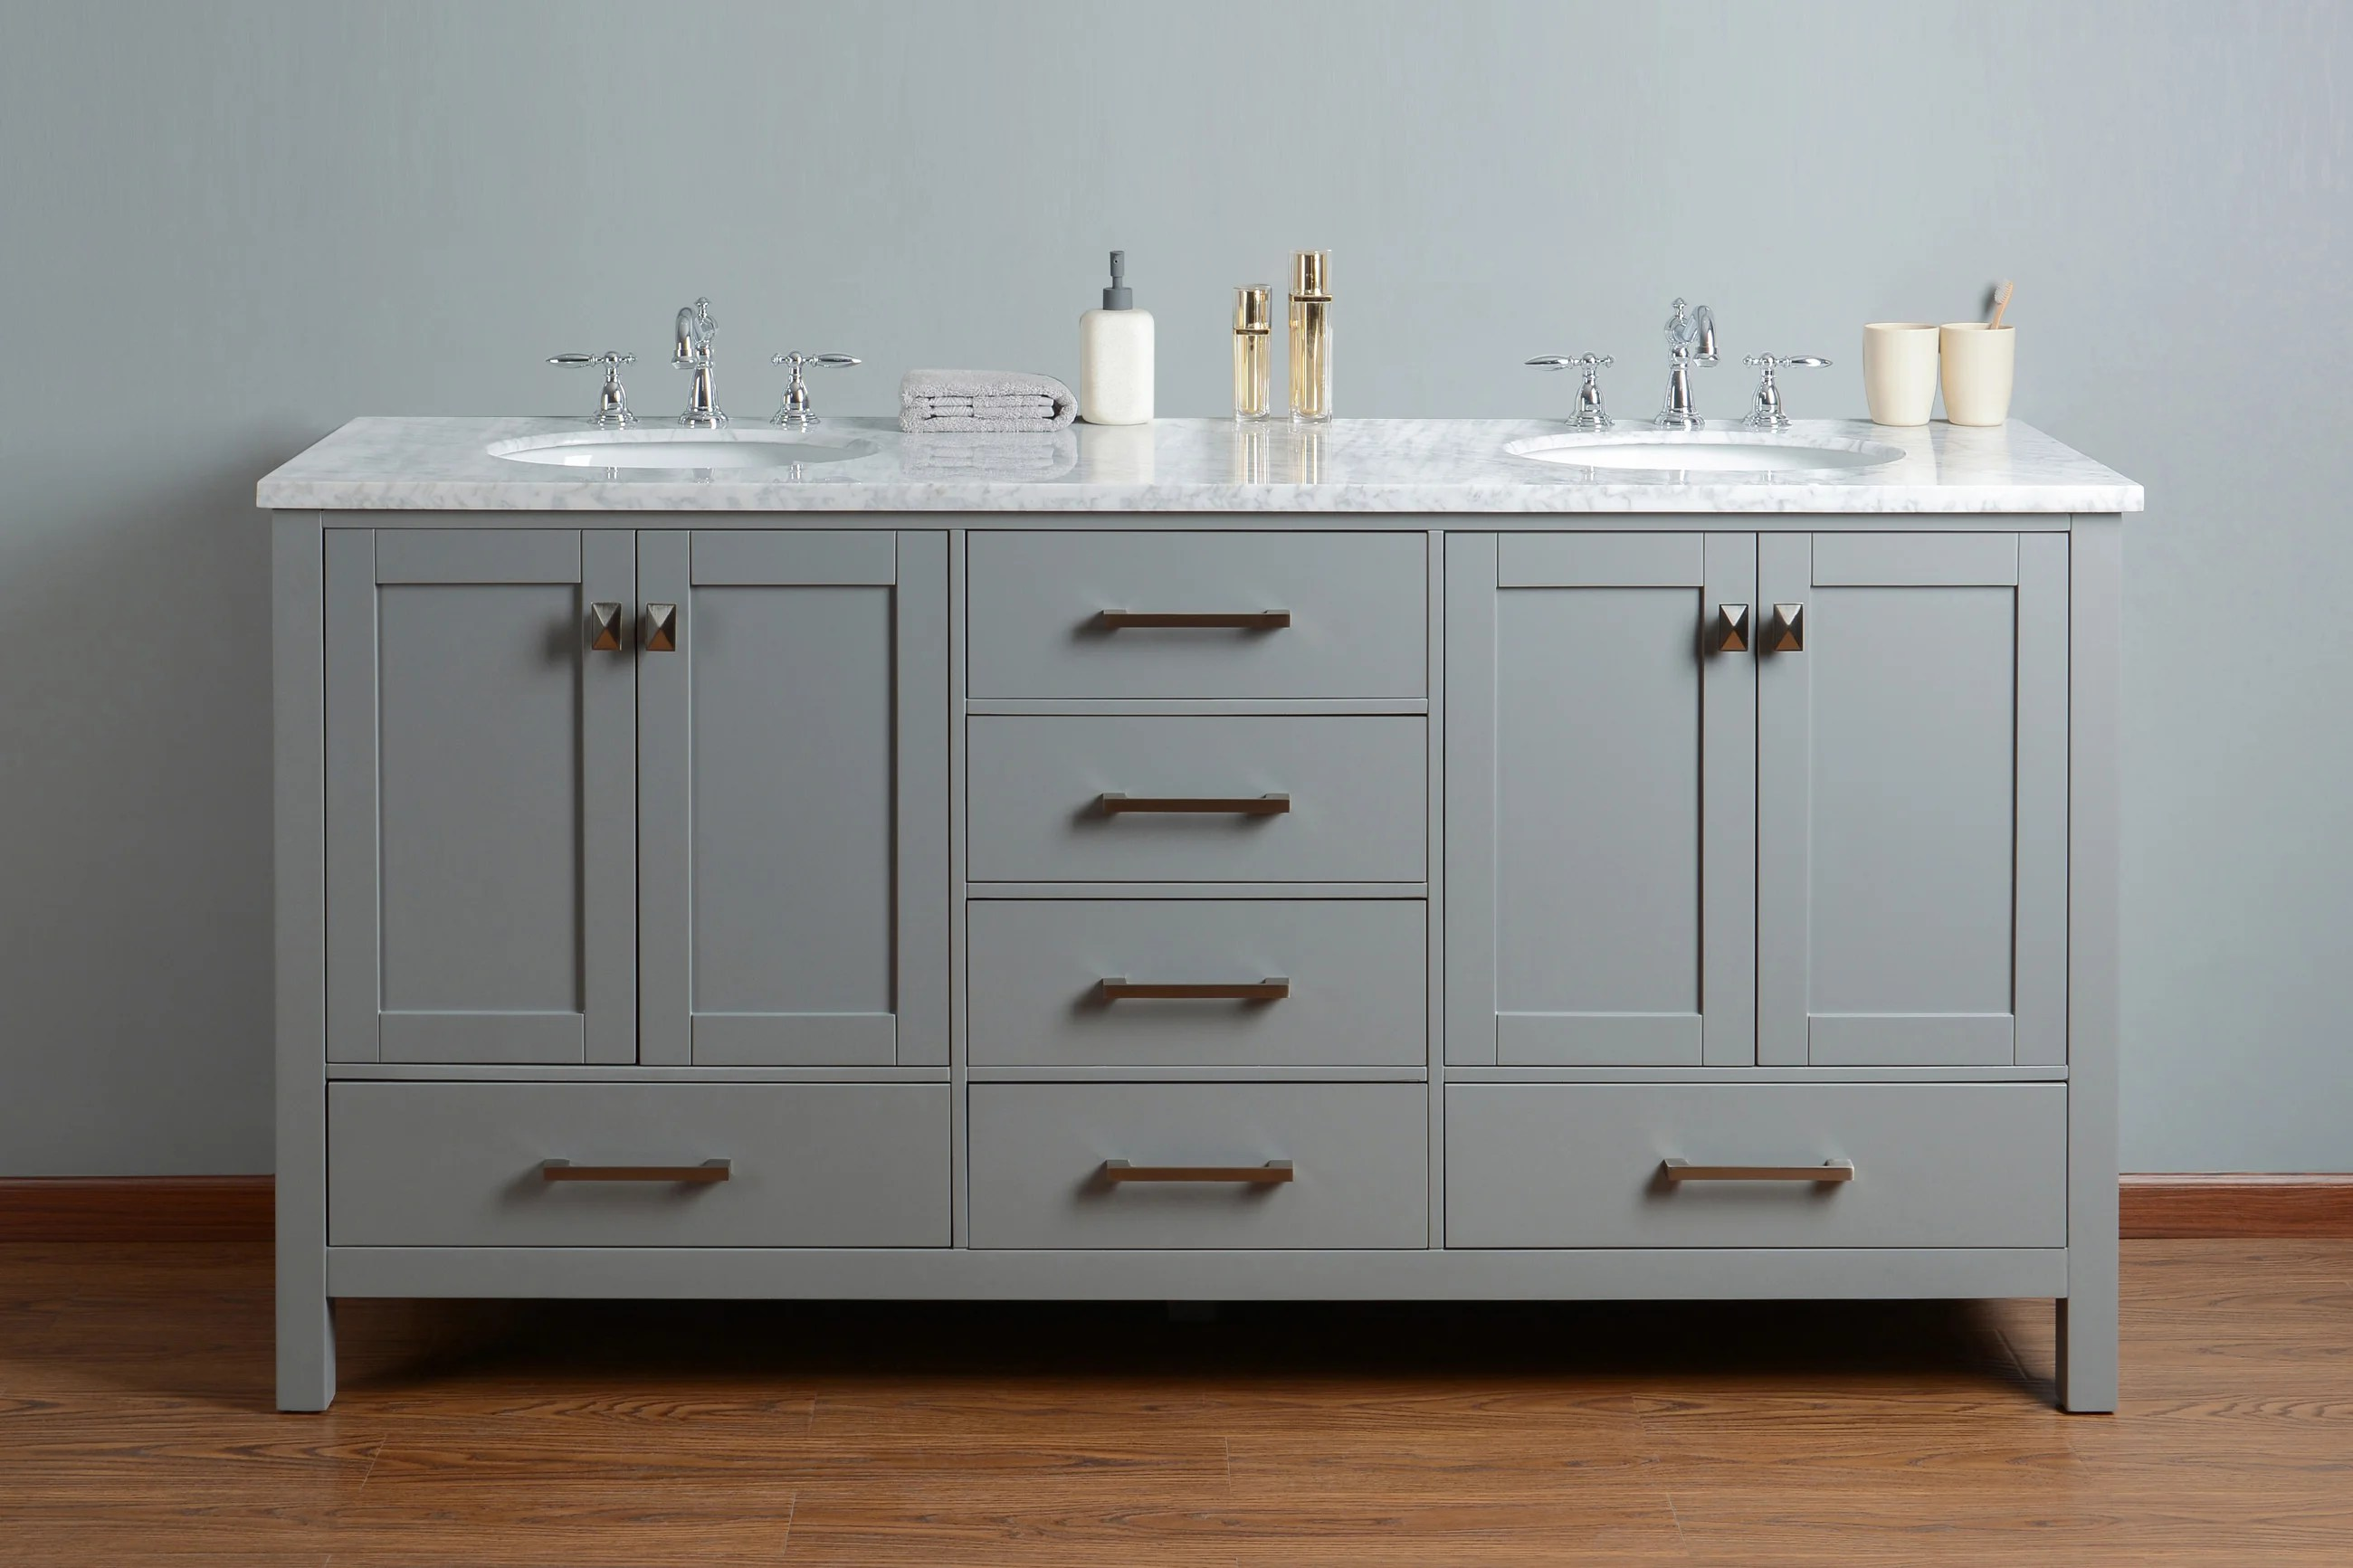 Bathroom Vanity 72 Double Sink Ankney 72